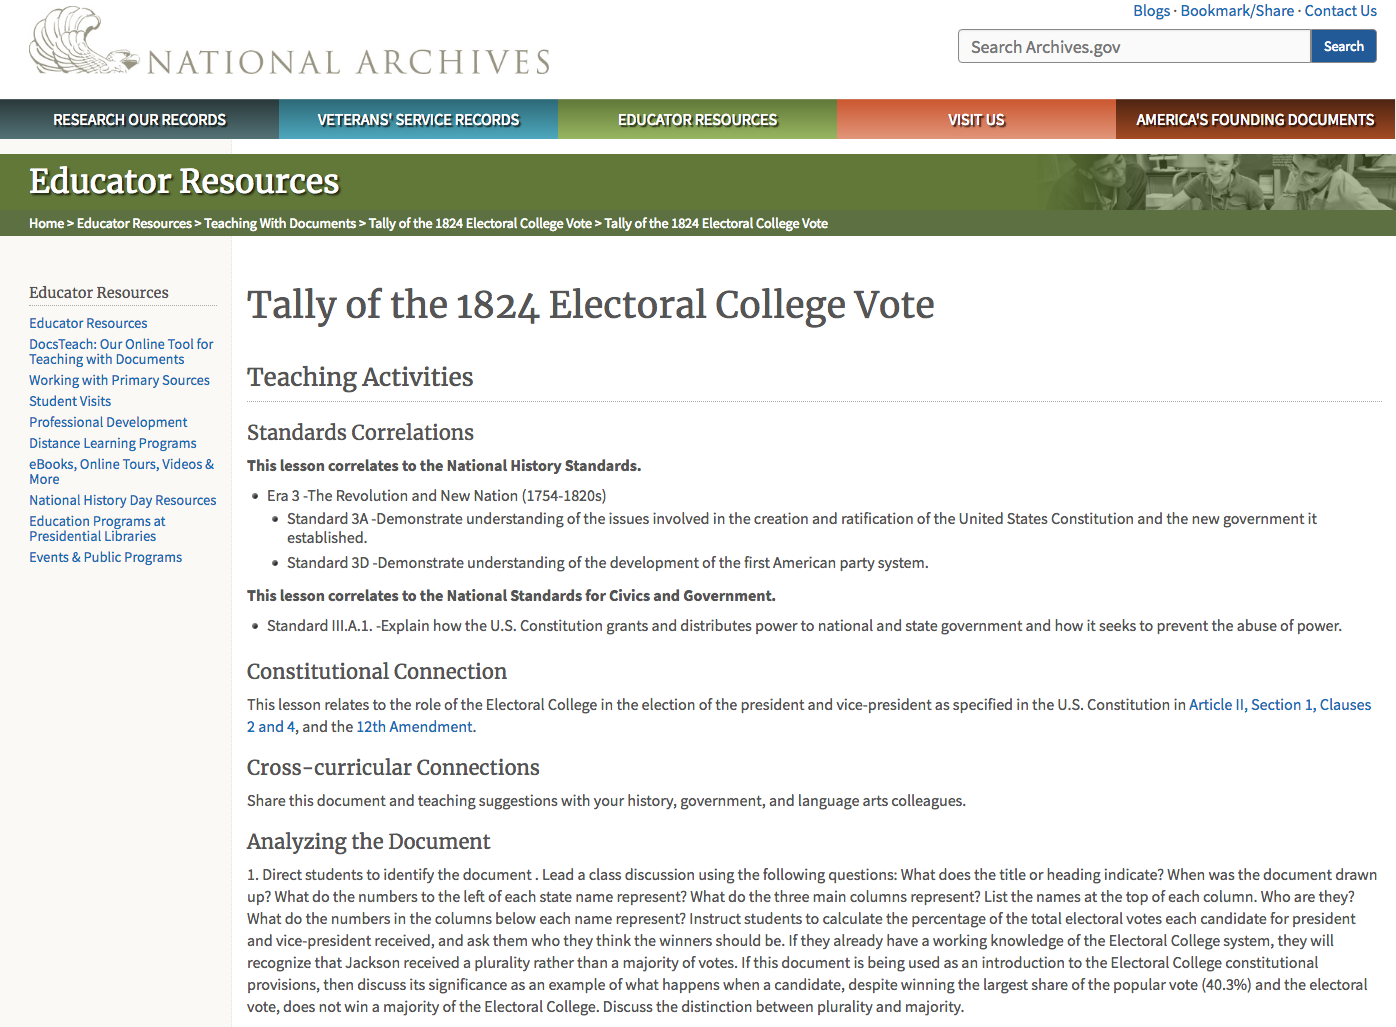 Tally of the 1824 Electoral College Vote Lesson Plan